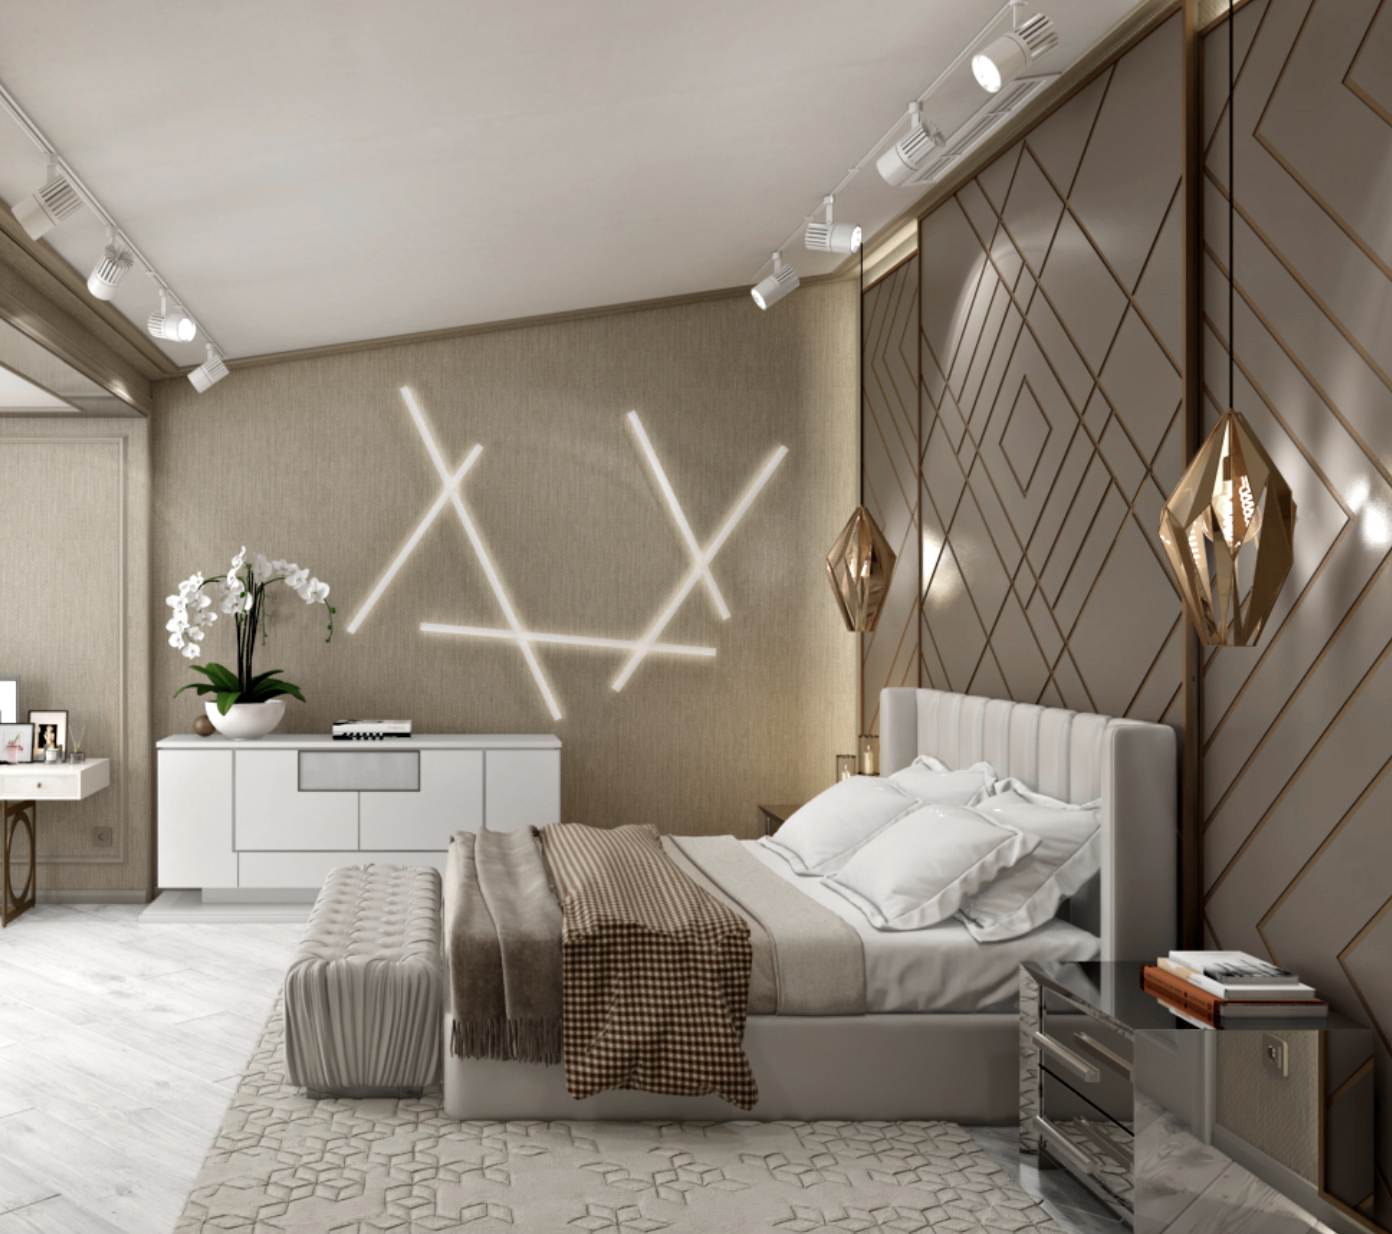 32 Stunning Luxury Master Bedroom Designs Photo Collection: N-Cube Luxury, Elegant And Beautiful Bedroom With Beige